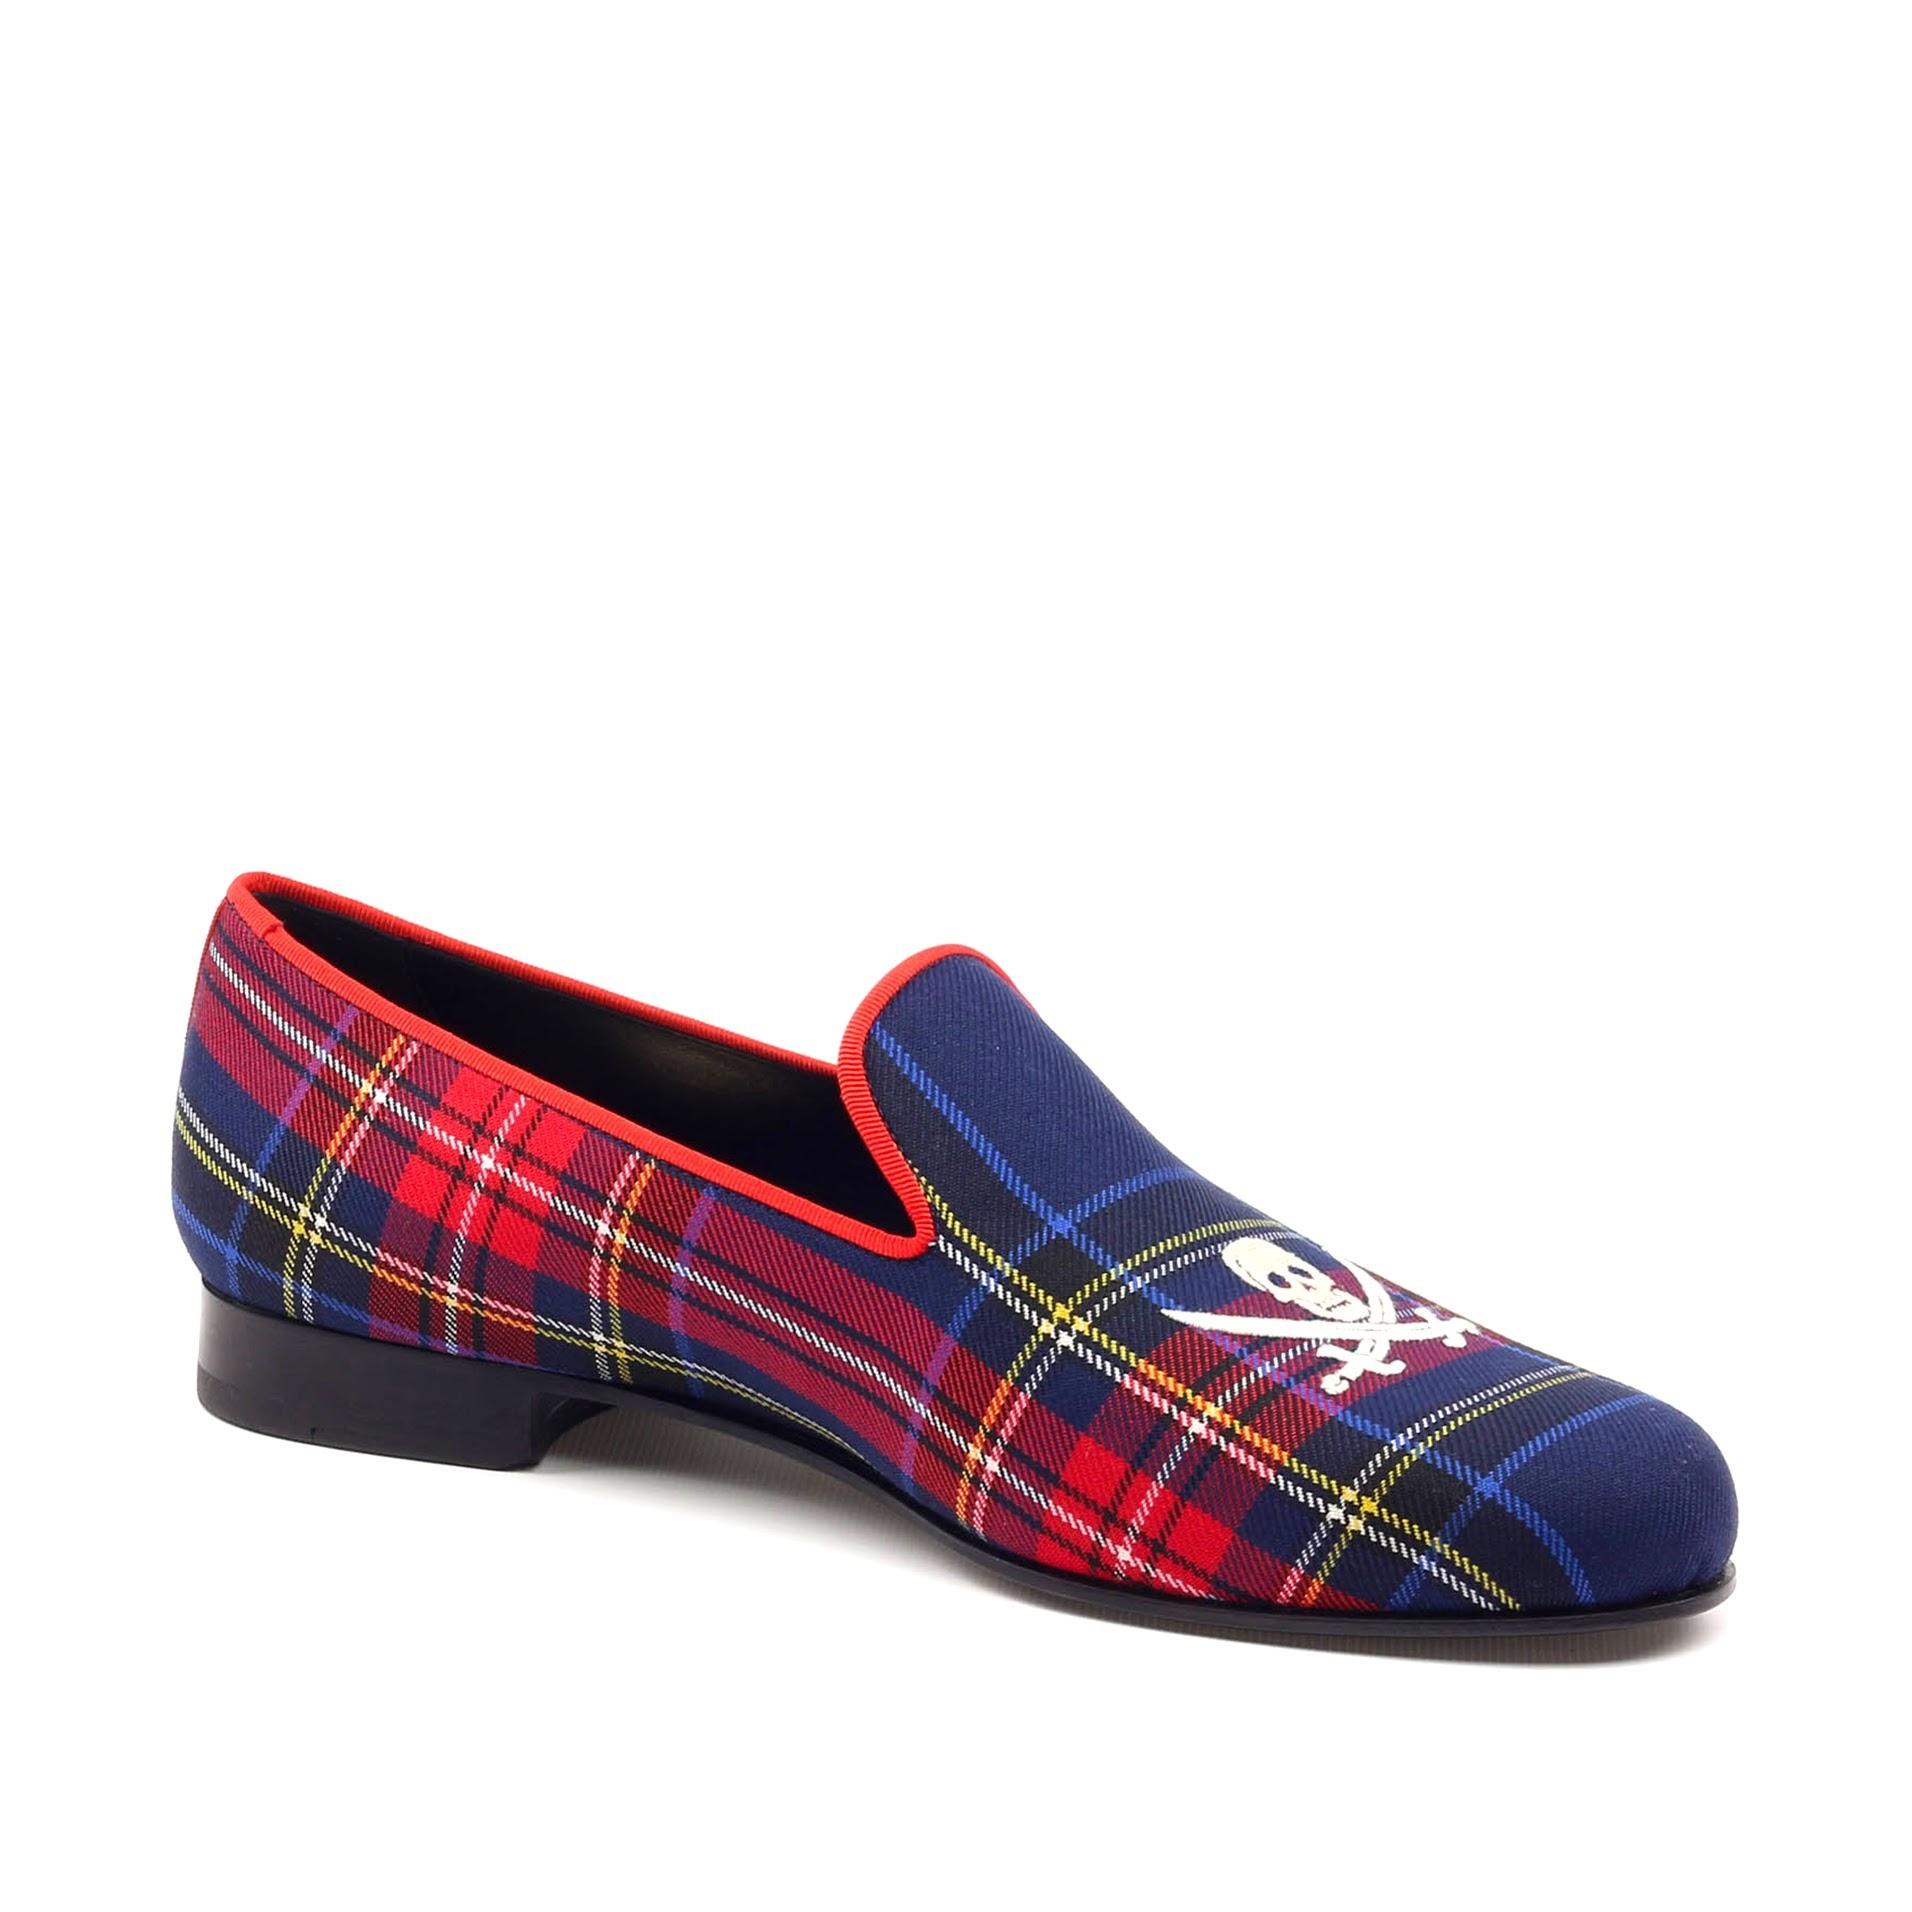 Manor of London 'Jolly Roger' Navy Mens Tartan Leather Luxury Slip On Slippers Inside View